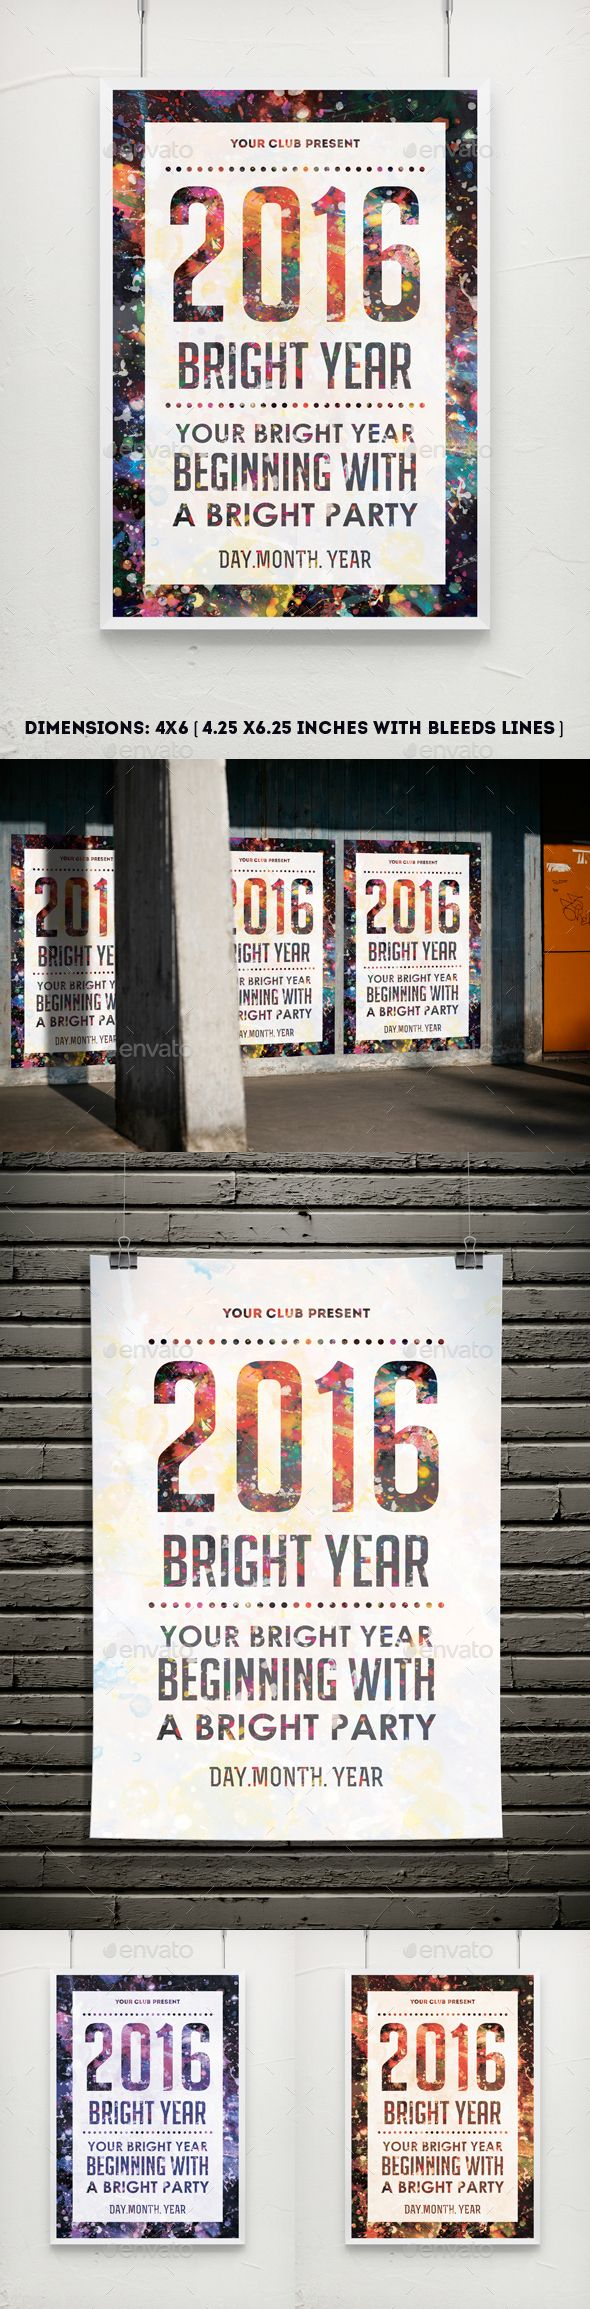 Poster design dimensions - Bright Year Party Poster Flyer Template